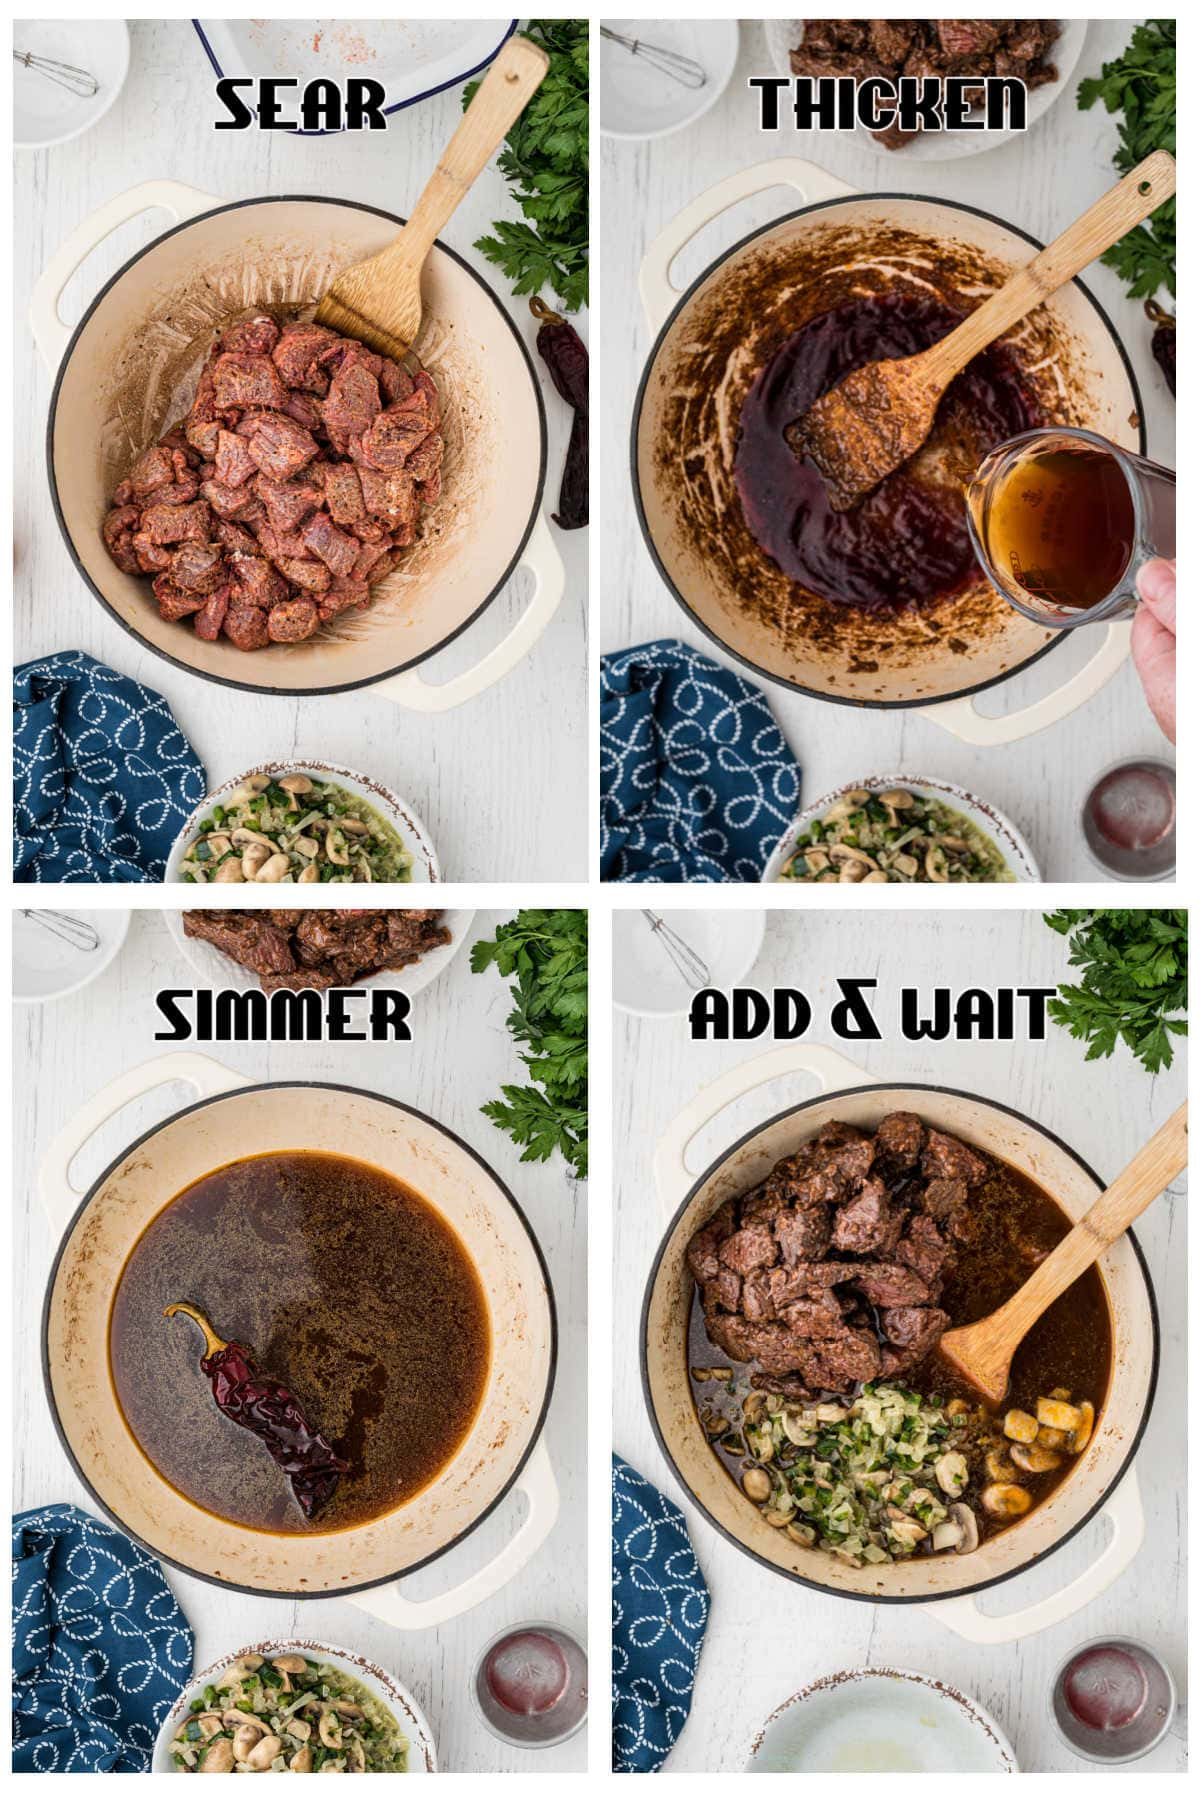 Steps 4 through 8 for making beef tips and gravy.